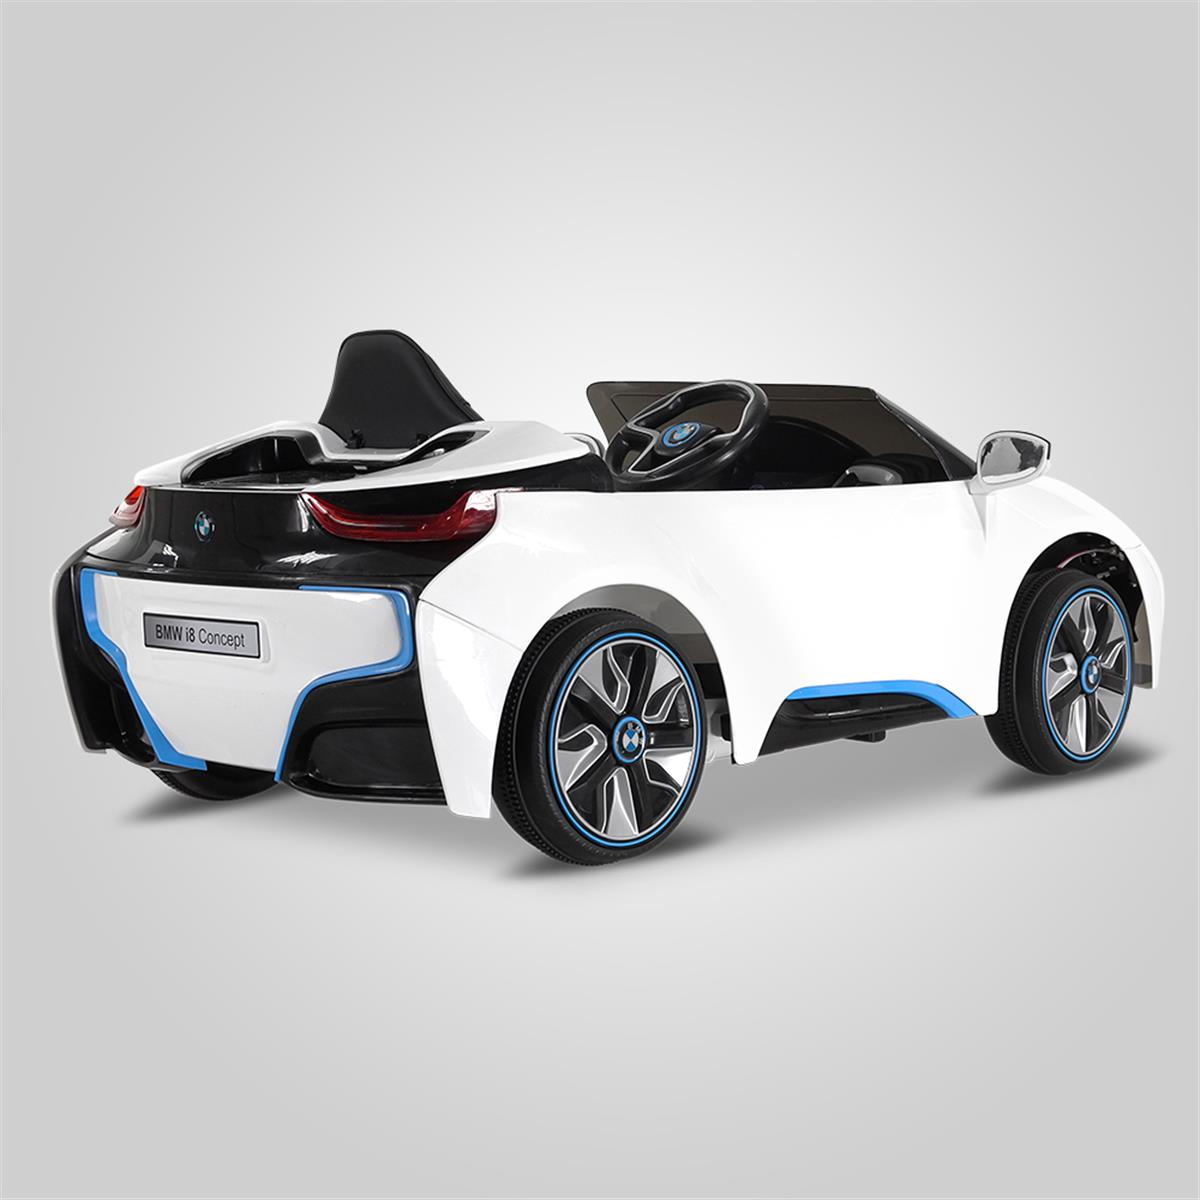 voiture lectrique bmw i8 pour les enfants smallmx smallmx dirt bike pit bike quads. Black Bedroom Furniture Sets. Home Design Ideas